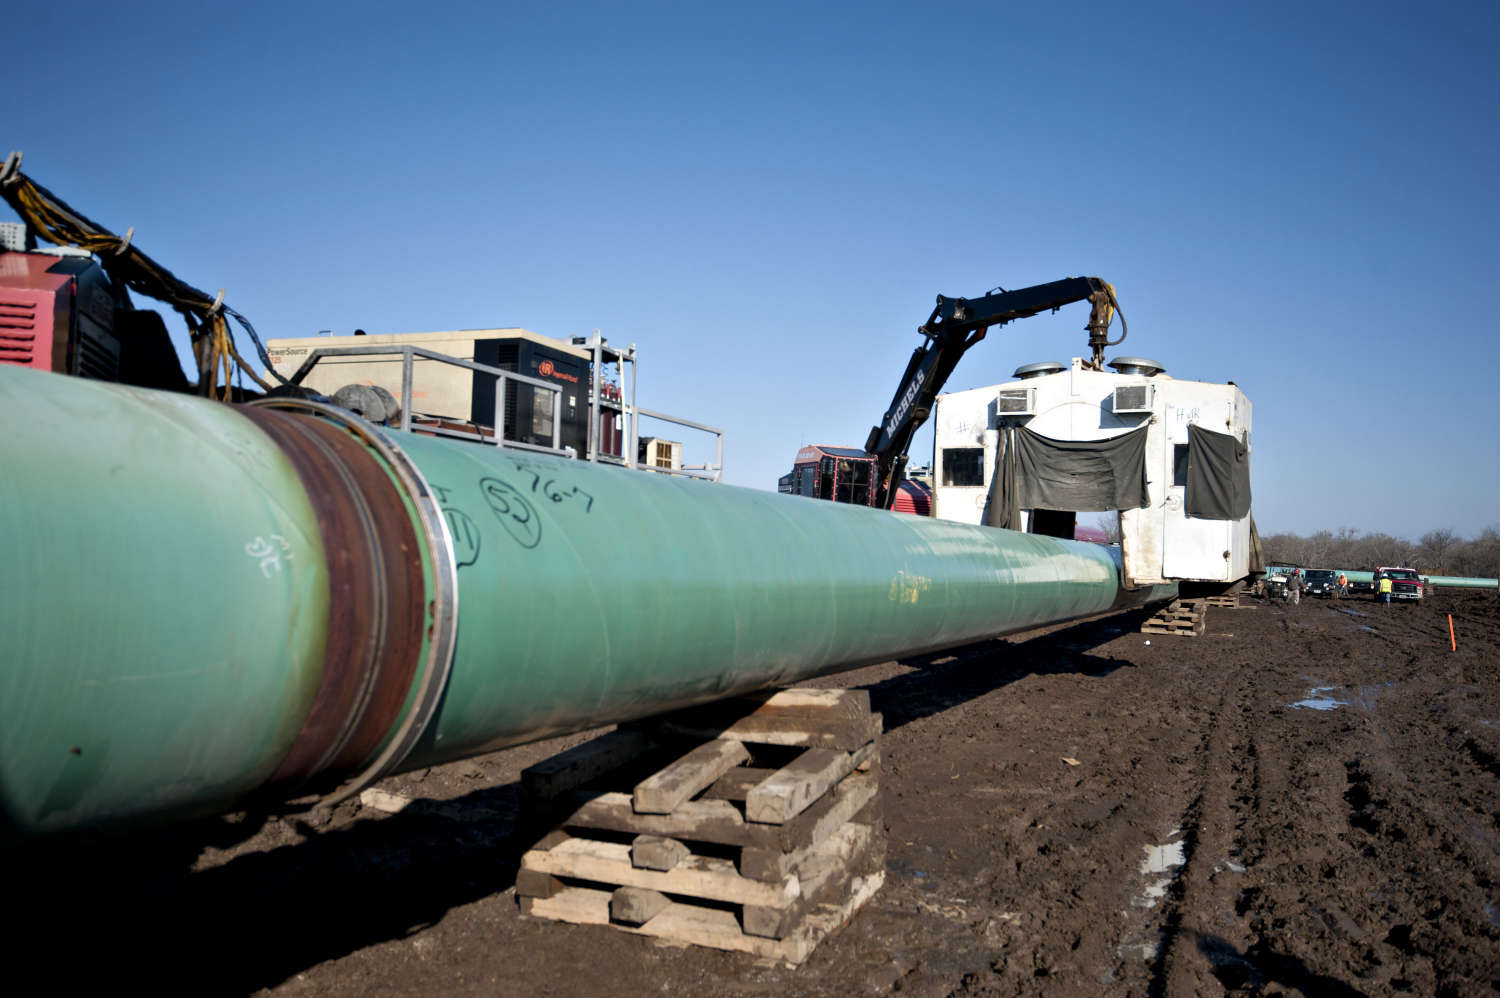 While one section of the Keystone pipeline is under construction, it's up to President Obama to decide if the full project will go forward